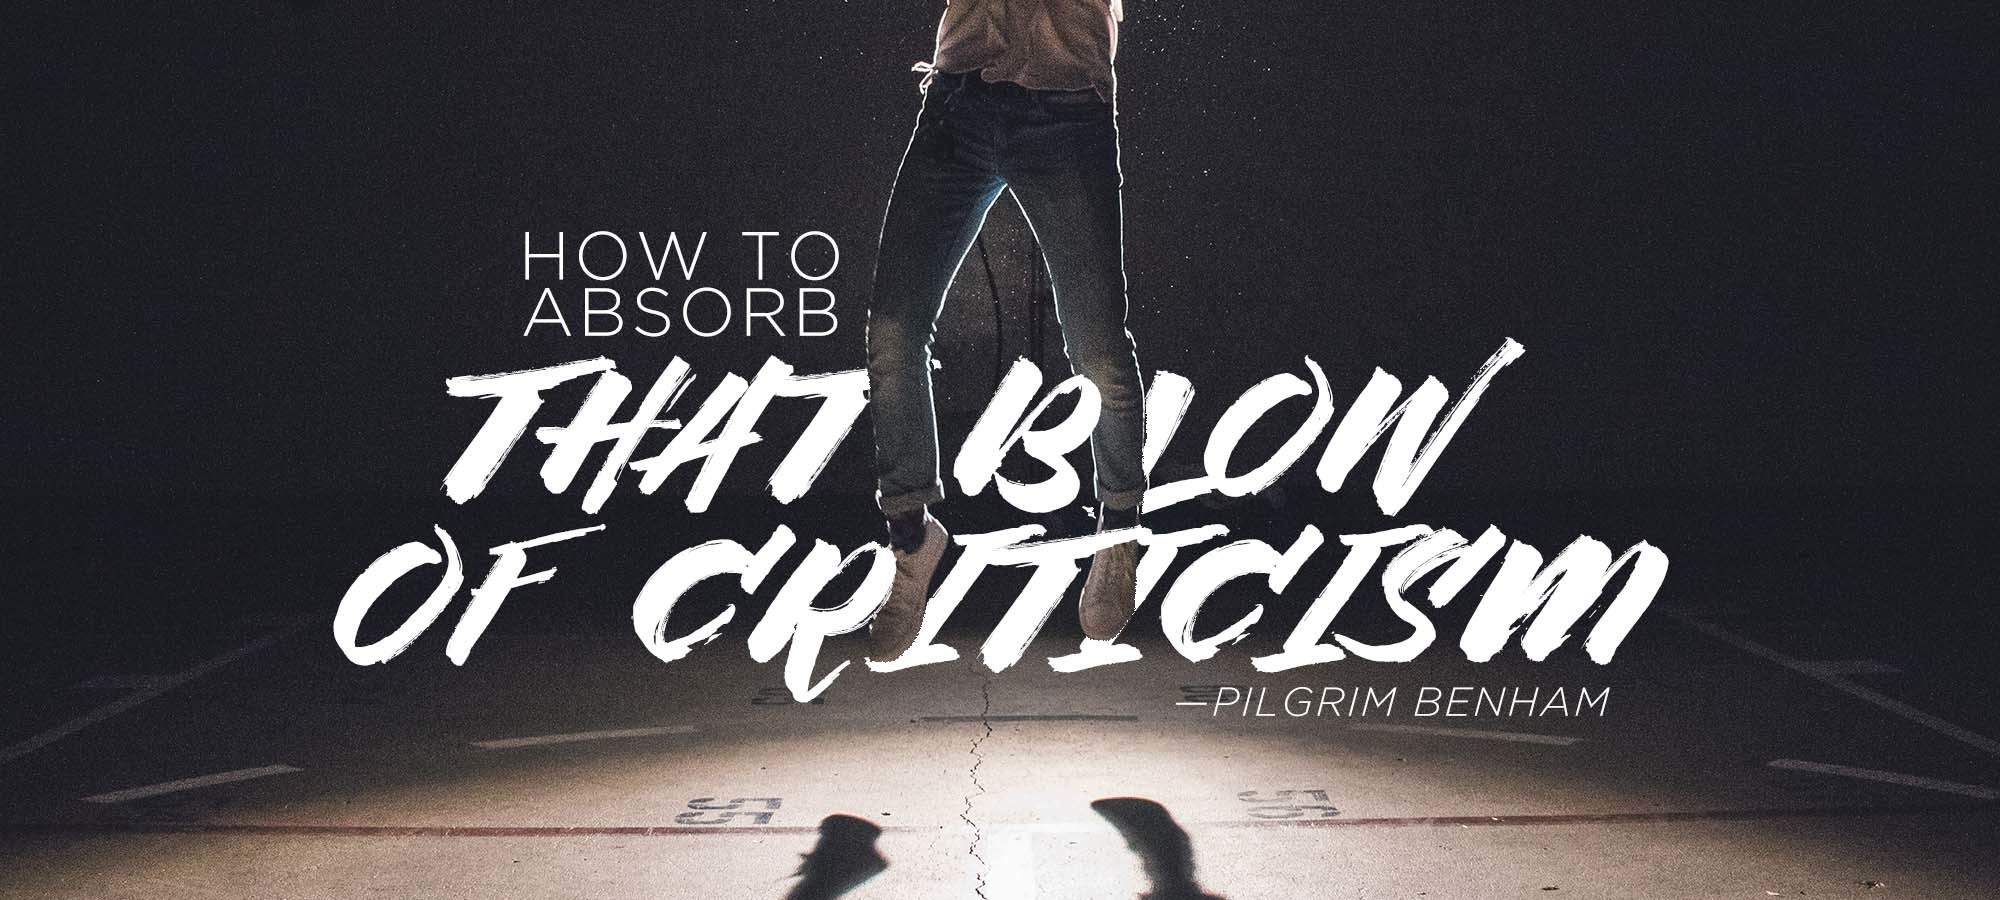 How to Absorb That Blow of Criticism